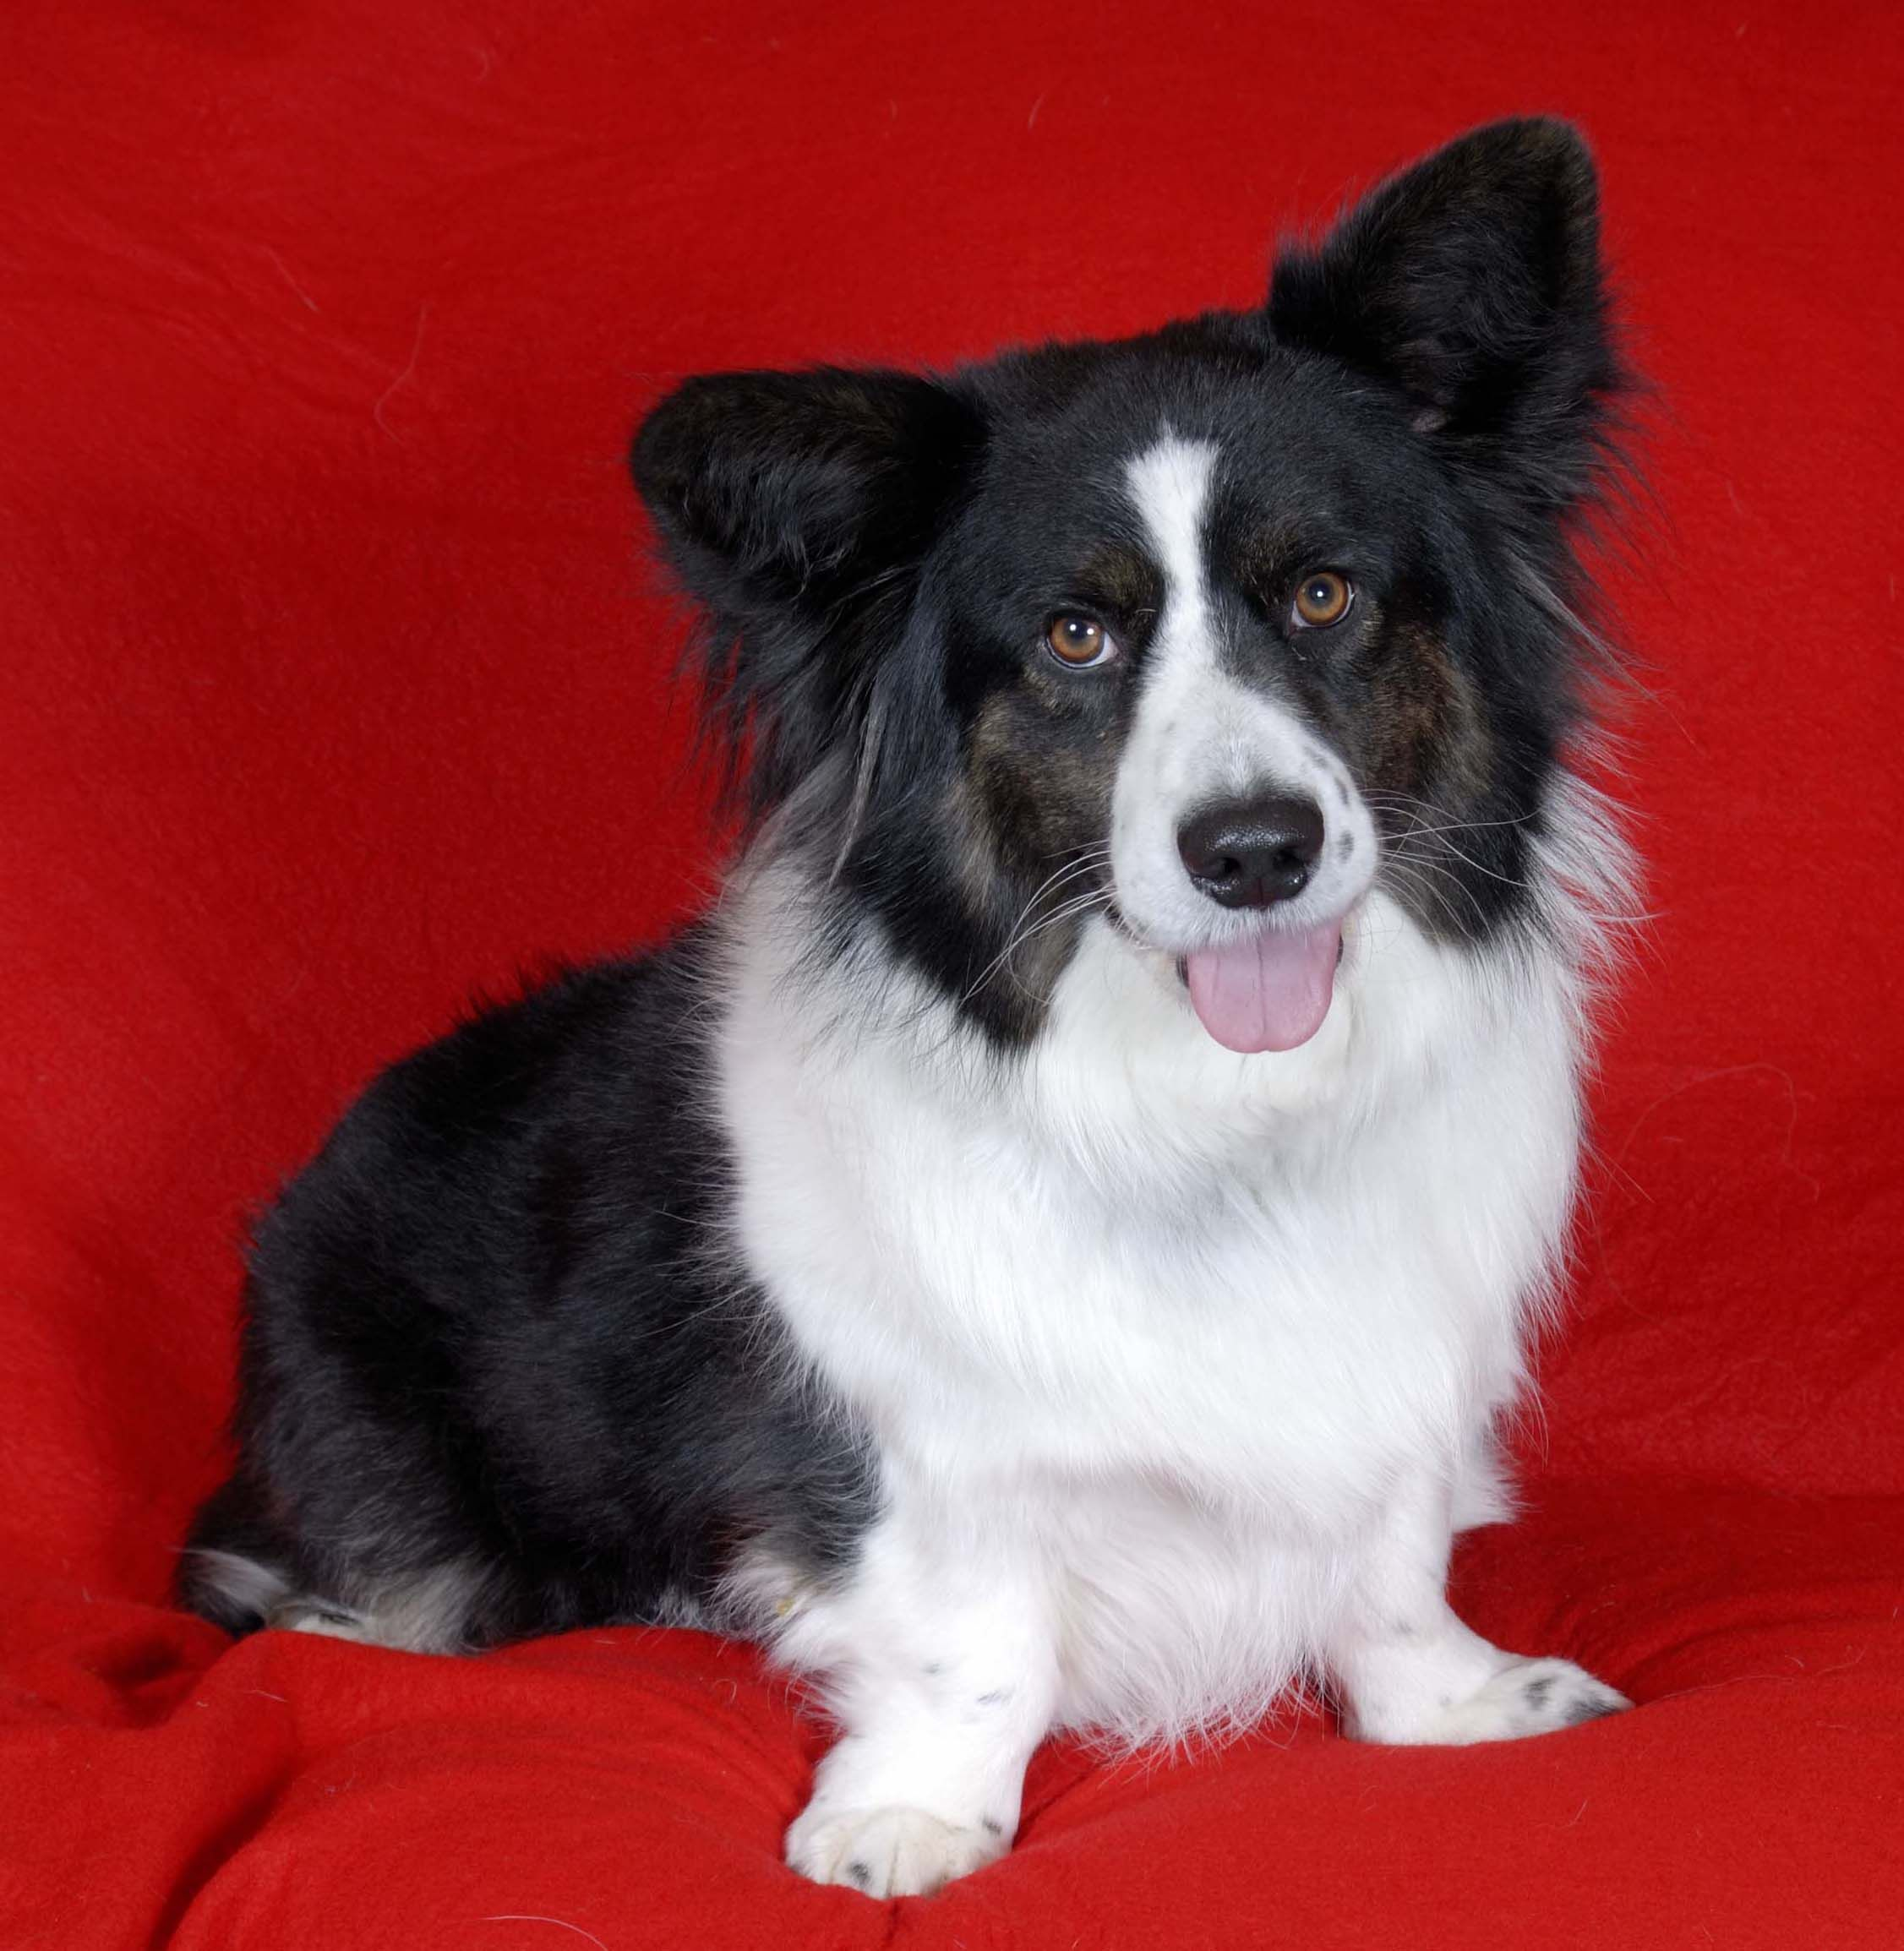 Bogart A Fluffy Cardigan Welsh Corgi Wishing All His Furpals A